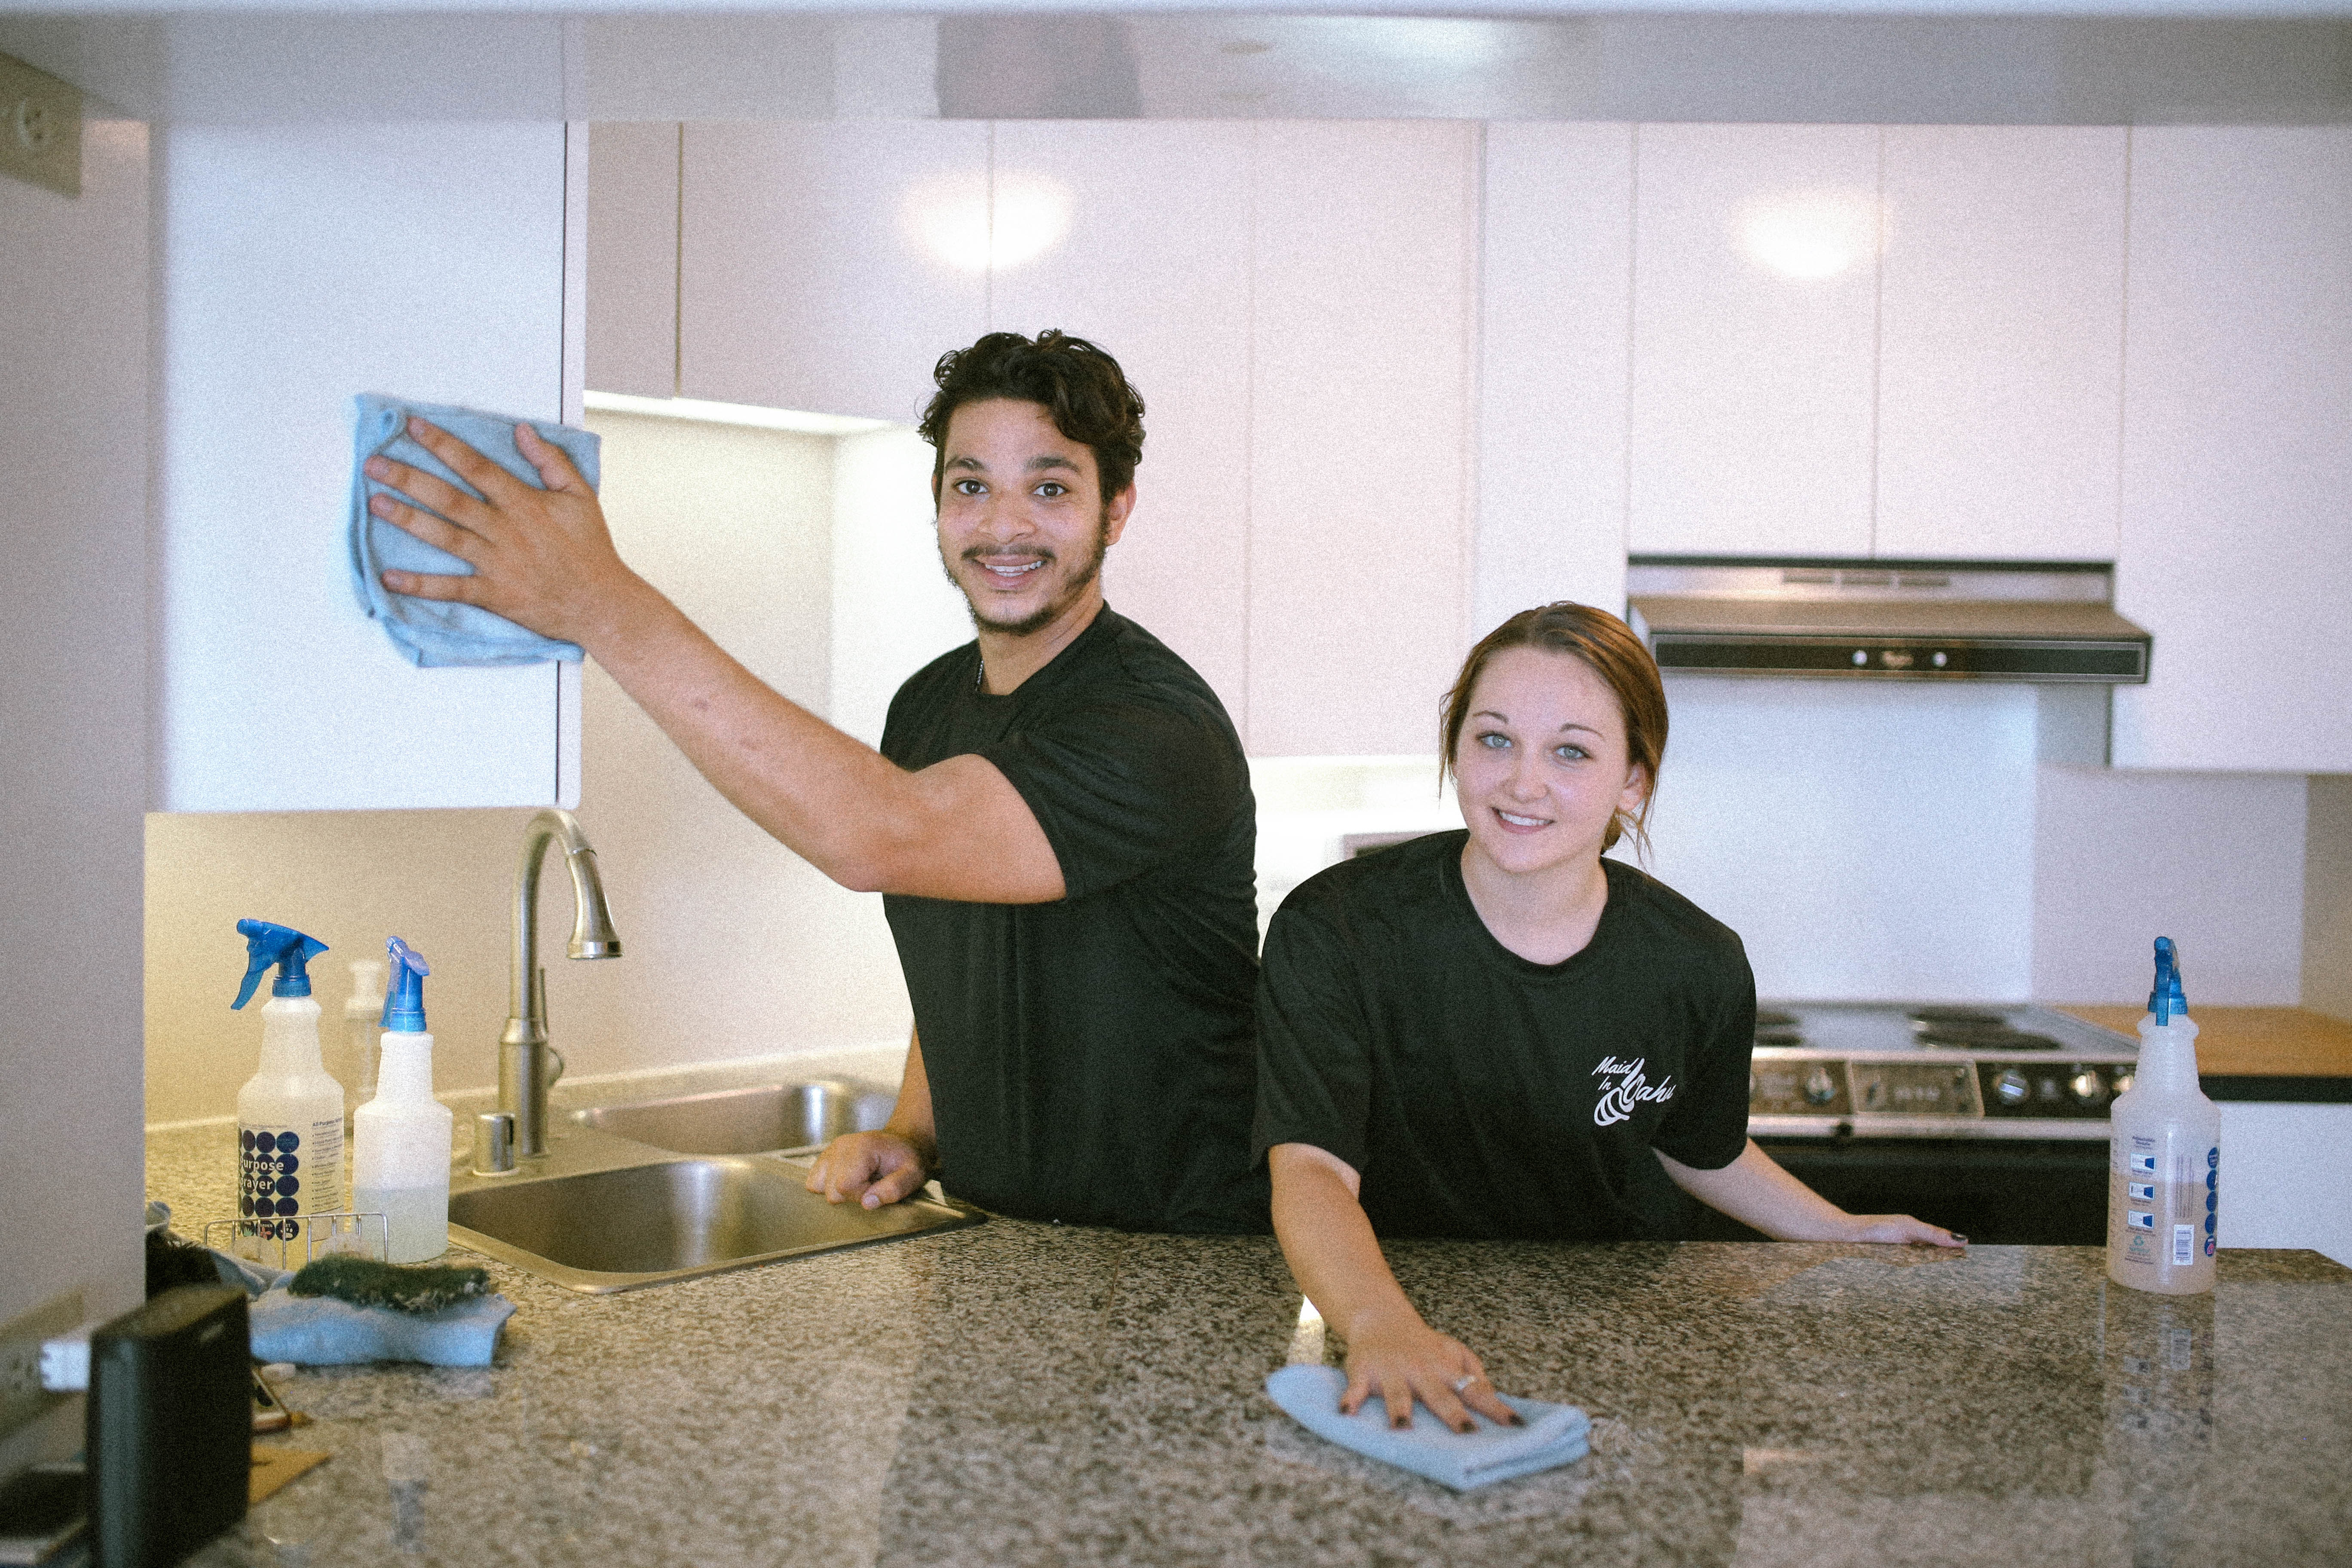 Maid in Oahu cleaning service